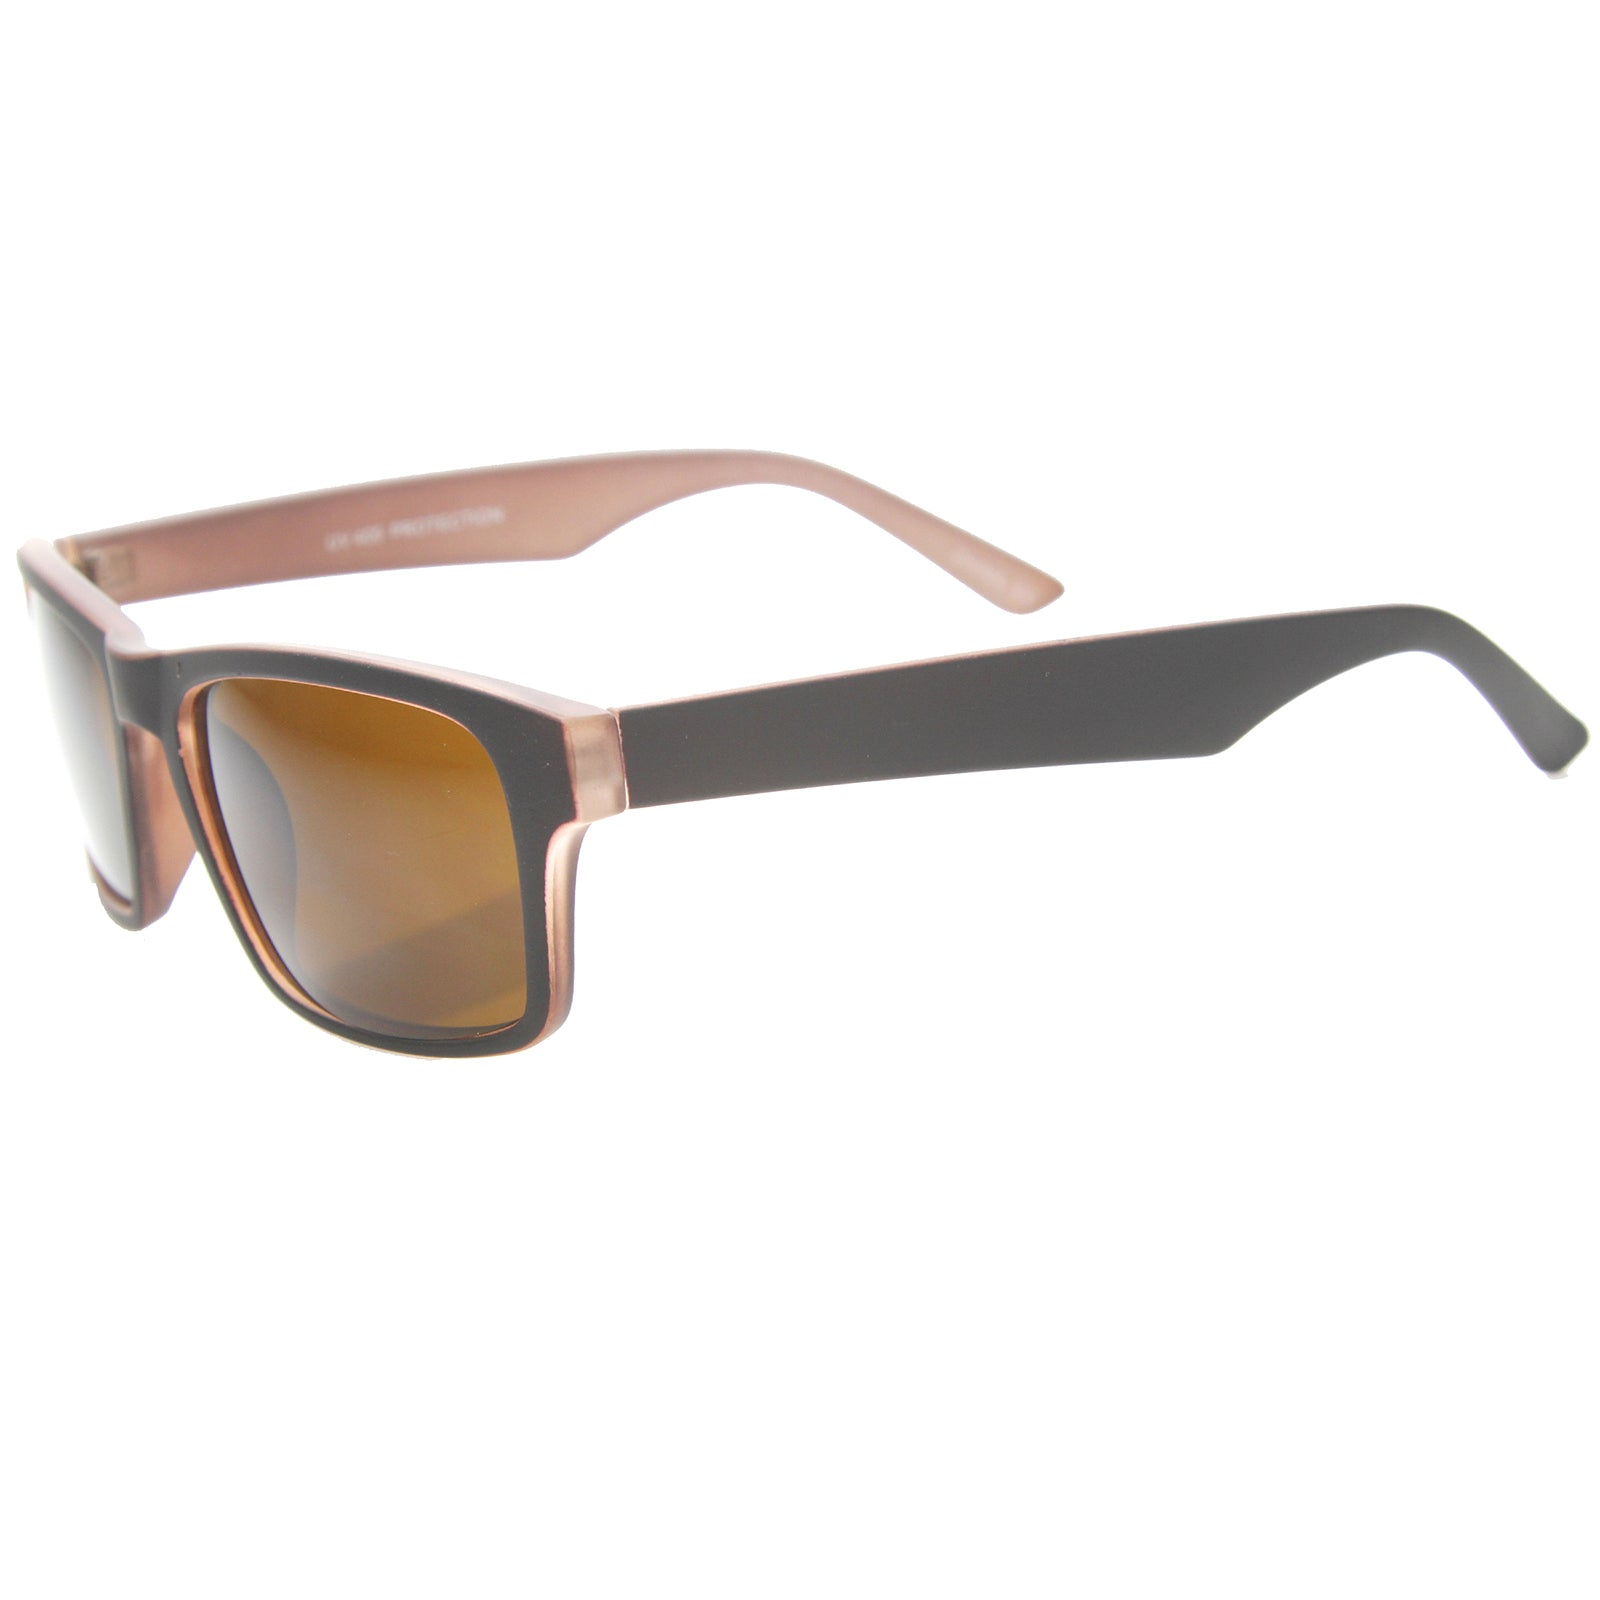 Mens Horn Rimmed Sunglasses With UV400 Protected Composite Lens - sunglass.la - 7